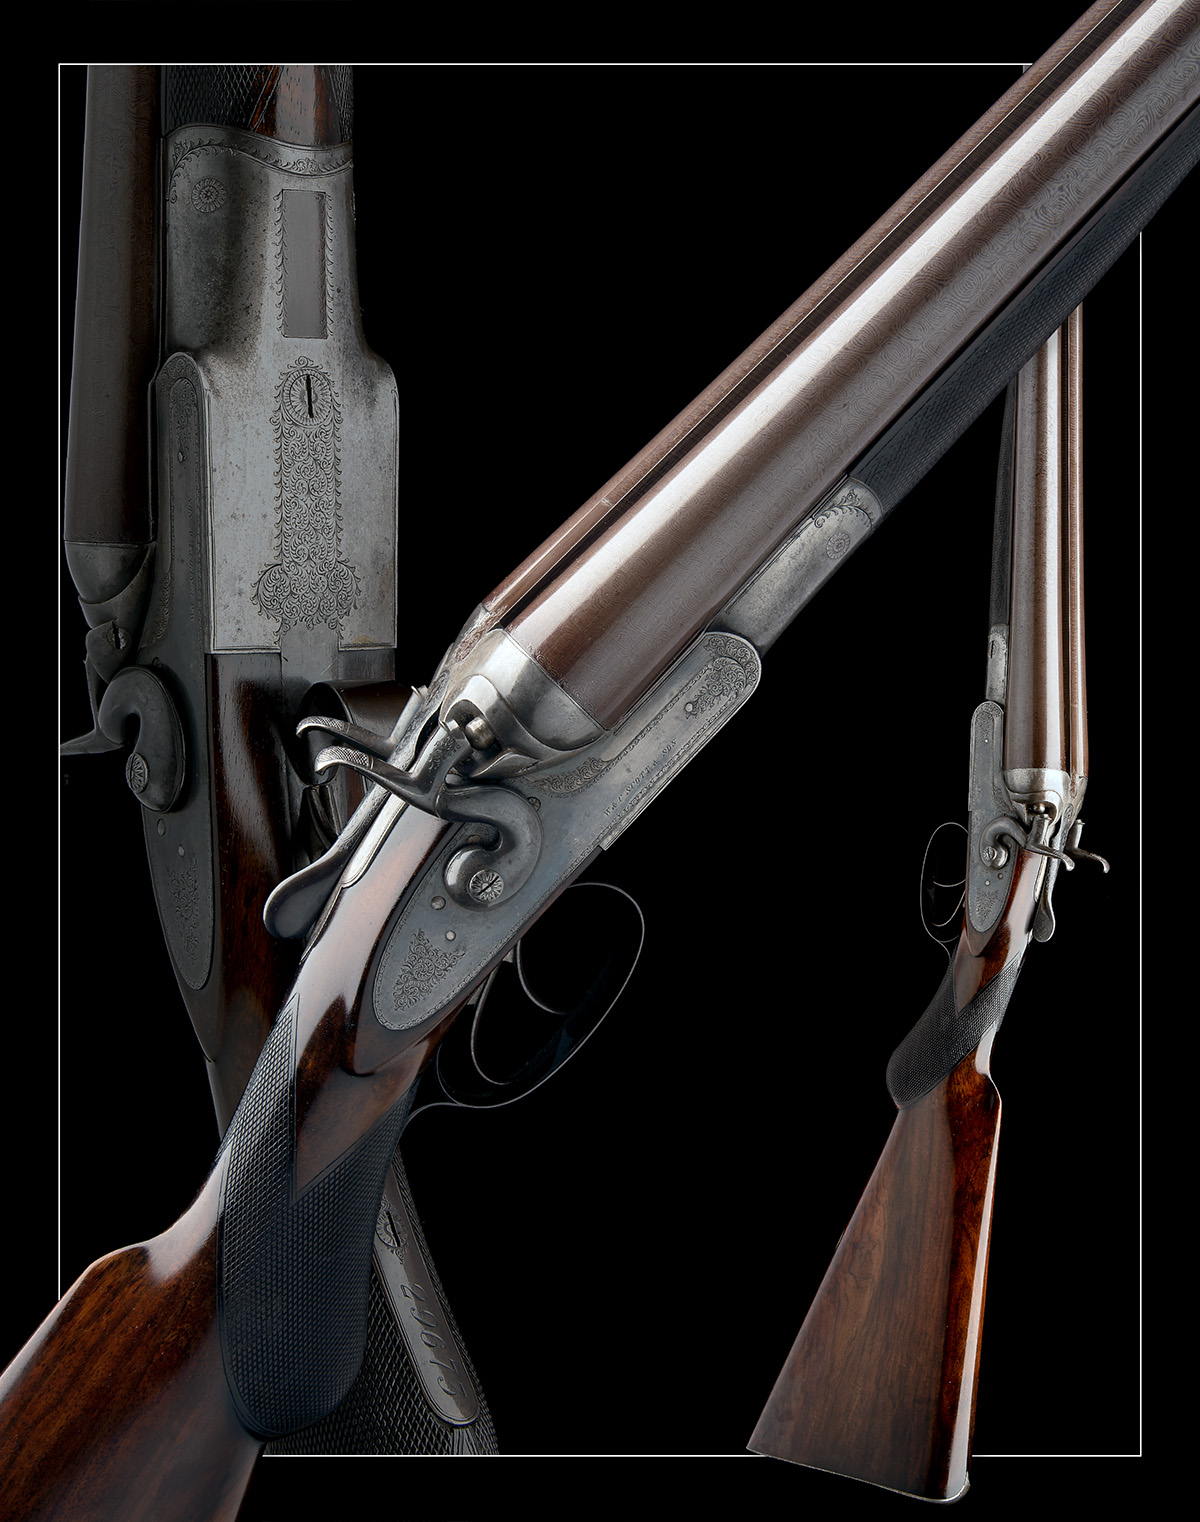 W. & C. SCOTT & SON AN 8-BORE 1865 PATENT DOUBLE-BARRELLED TOPLEVER HAMMERGUN, serial no. 29673, - Image 9 of 9